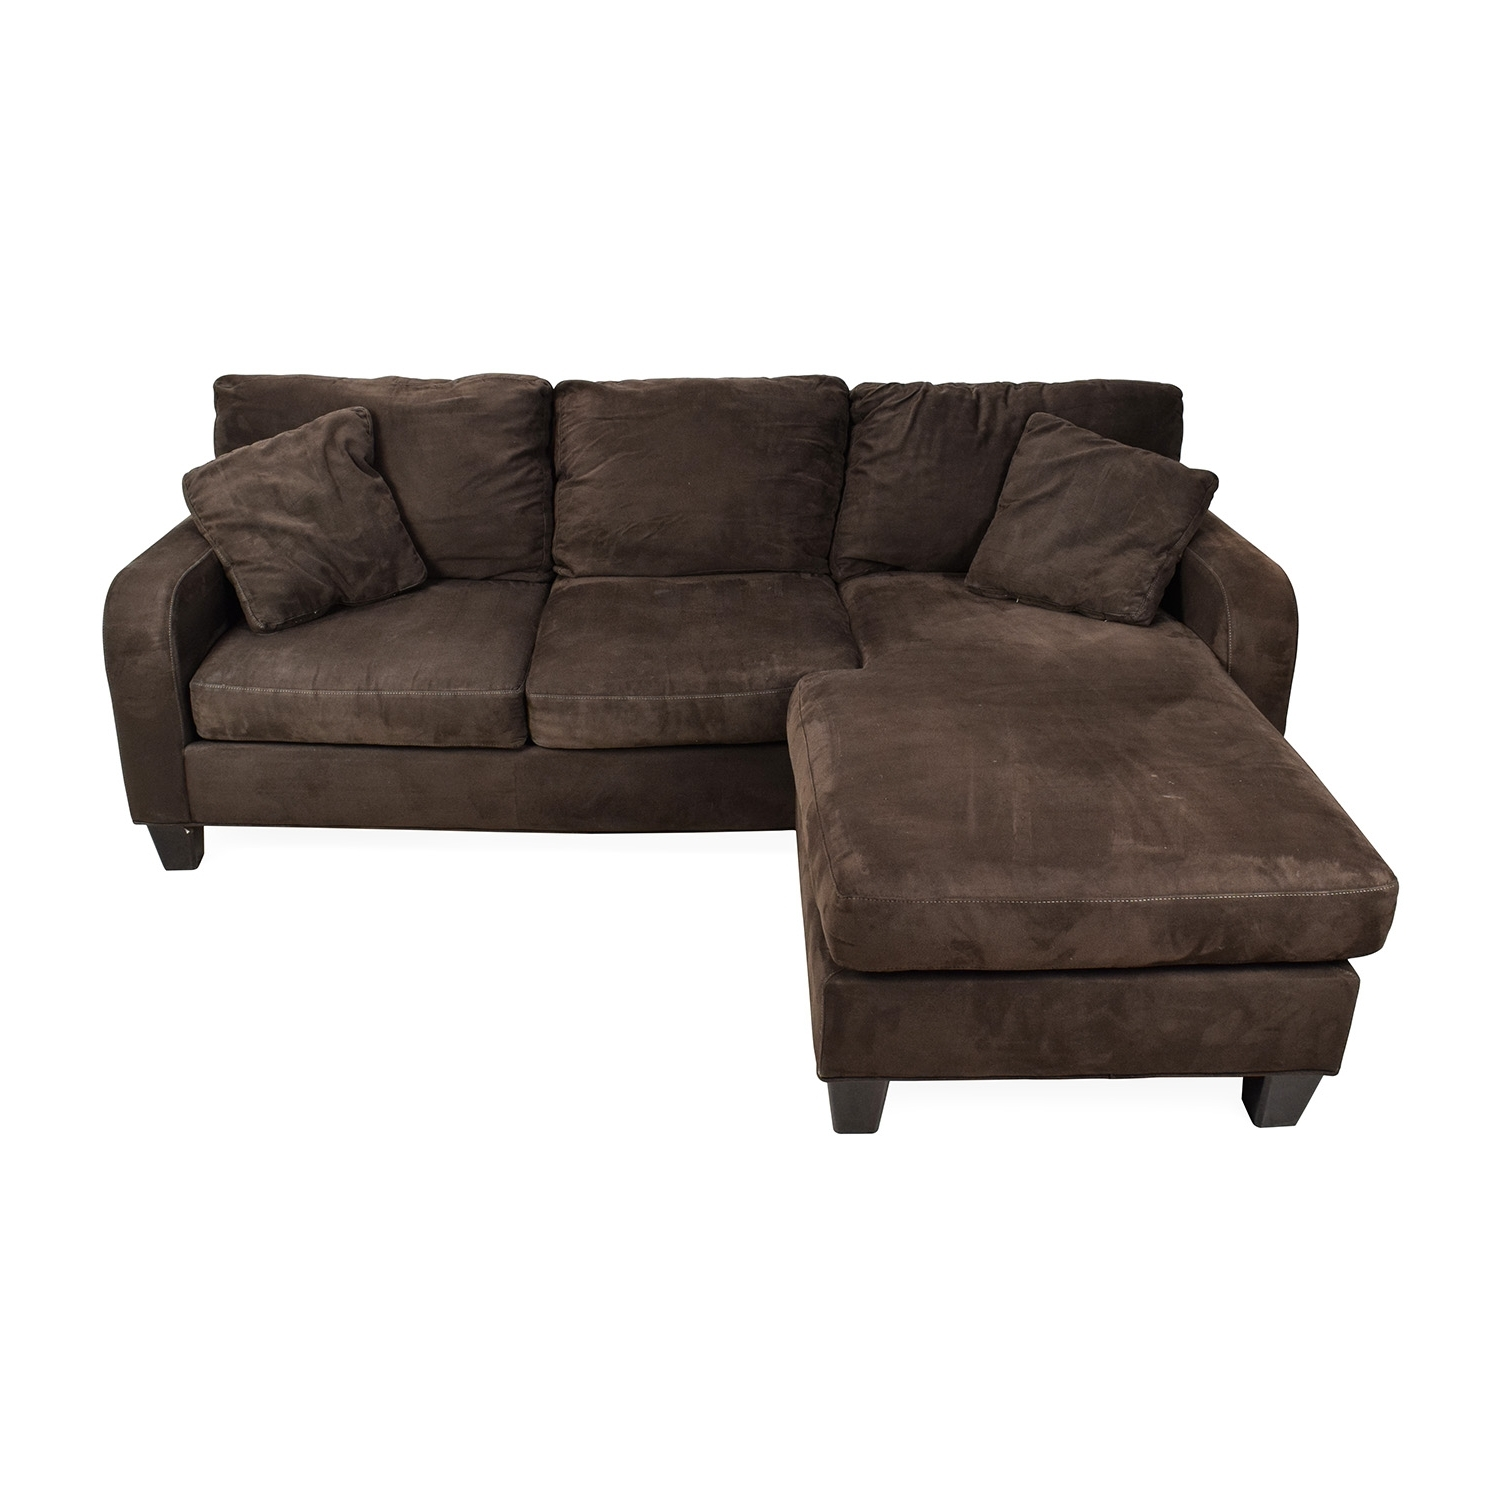 [%55% Off – Ms. Chesterfield Blue Tufted Left Chaise Sectional / Sofas For Well Known Microfiber Chaises|Microfiber Chaises With Most Up To Date 55% Off – Ms. Chesterfield Blue Tufted Left Chaise Sectional / Sofas|Favorite Microfiber Chaises In 55% Off – Ms. Chesterfield Blue Tufted Left Chaise Sectional / Sofas|Most Recent 55% Off – Ms (View 3 of 15)